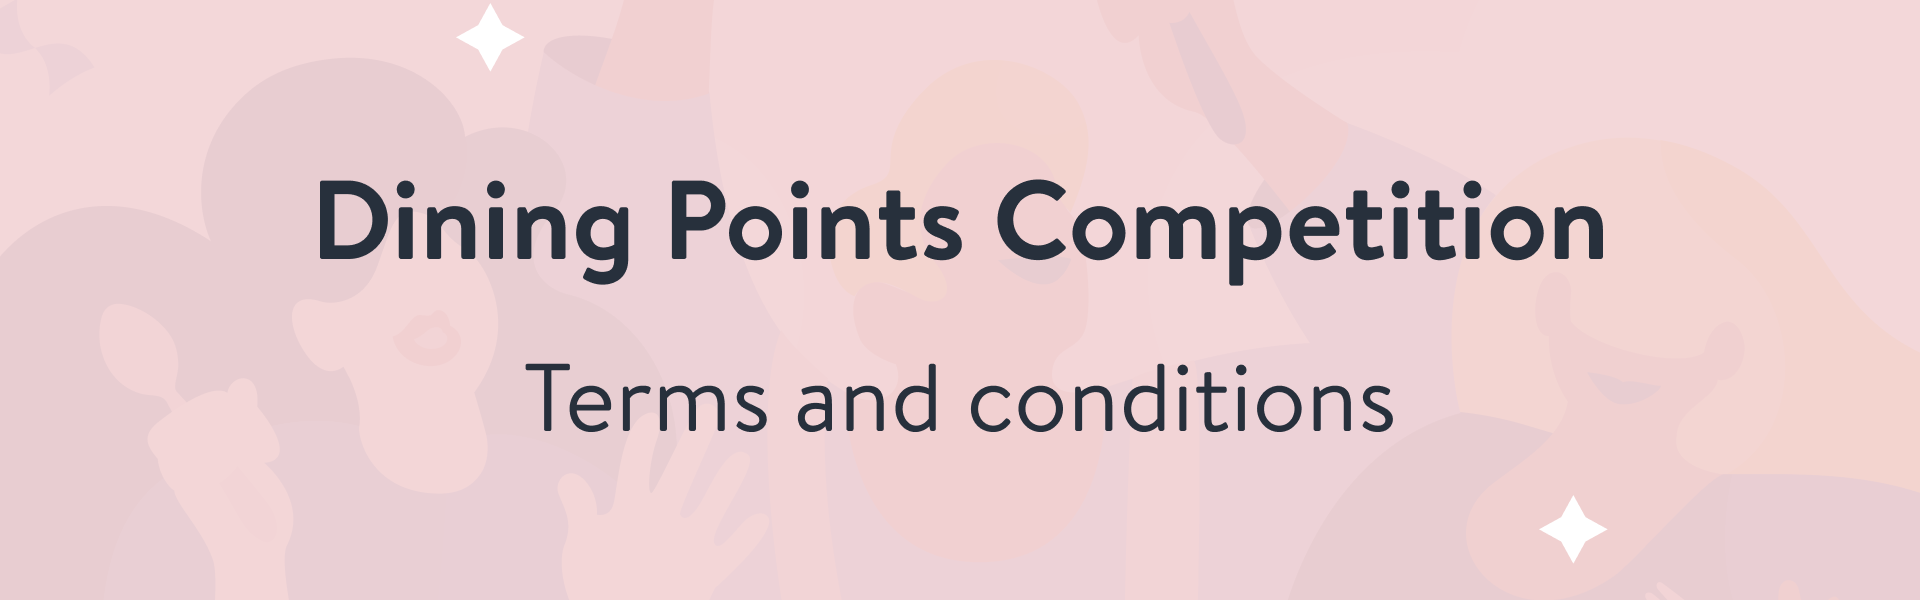 ot-dining-points